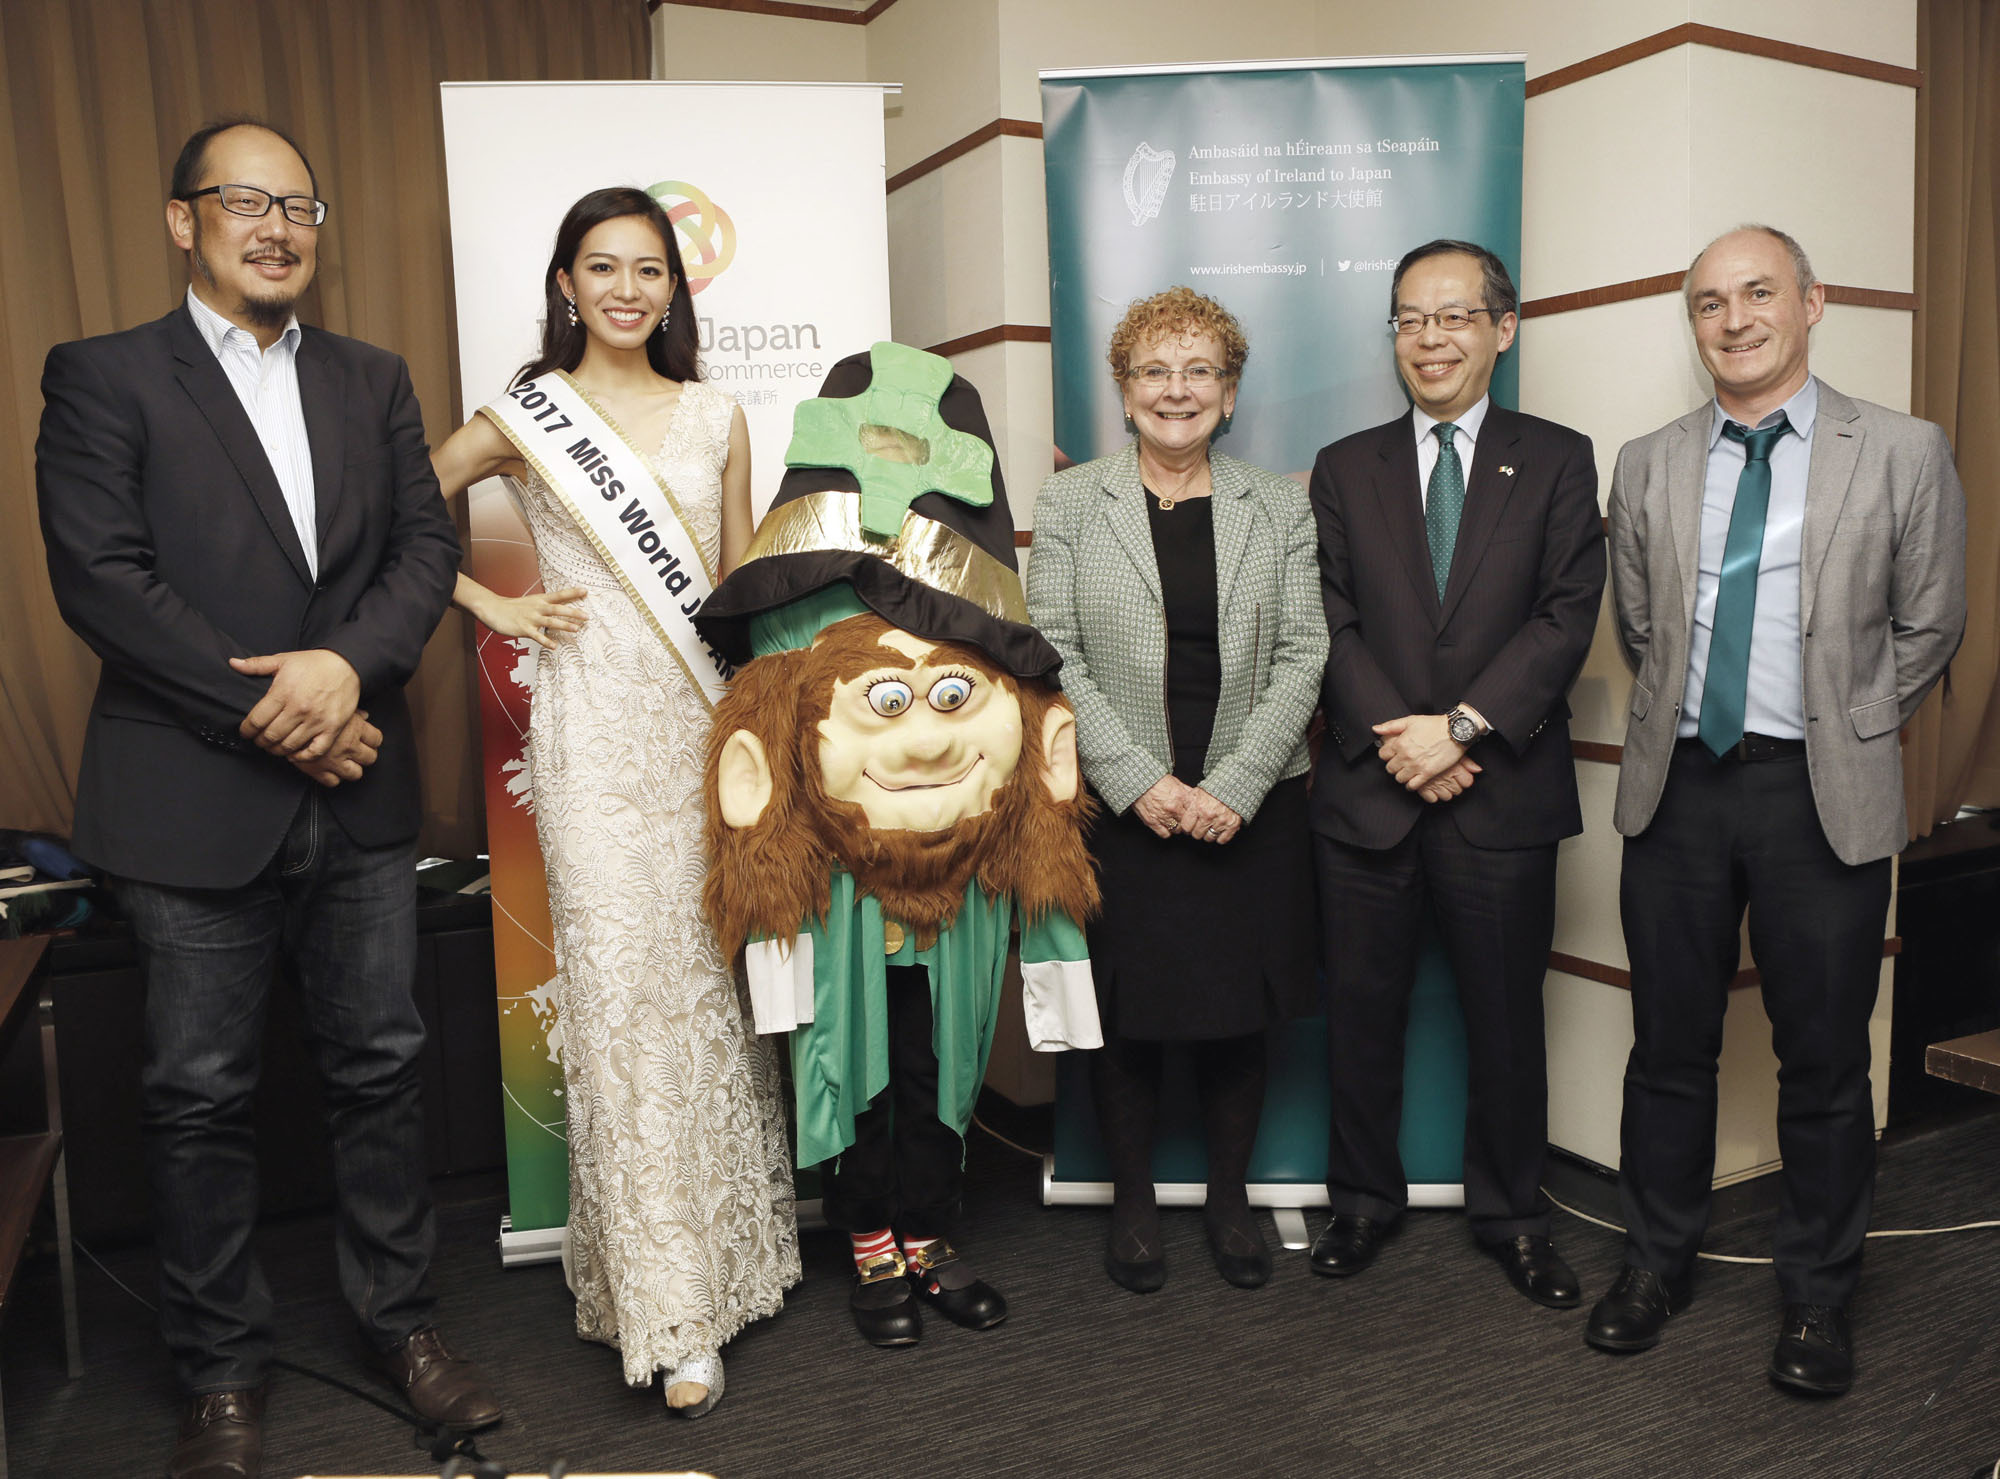 Irish Ambassador Anne Barrington poses for a photograph with (from left) Hakuei Kosato of La Ditta Japan, Miss World Japan Haruka Yamashita, Yoshiro Tsuchiya of the Ireland-Japan Chamber  of Commerce and Declan Somers, chairperson of Irish Network Japan after the launch of the Saint Patricks Day Festival in Japan 2018 at the Foreign Correspondents' Club      of  Japan on Feb. 16.      photo courtesy of The irish embassy |